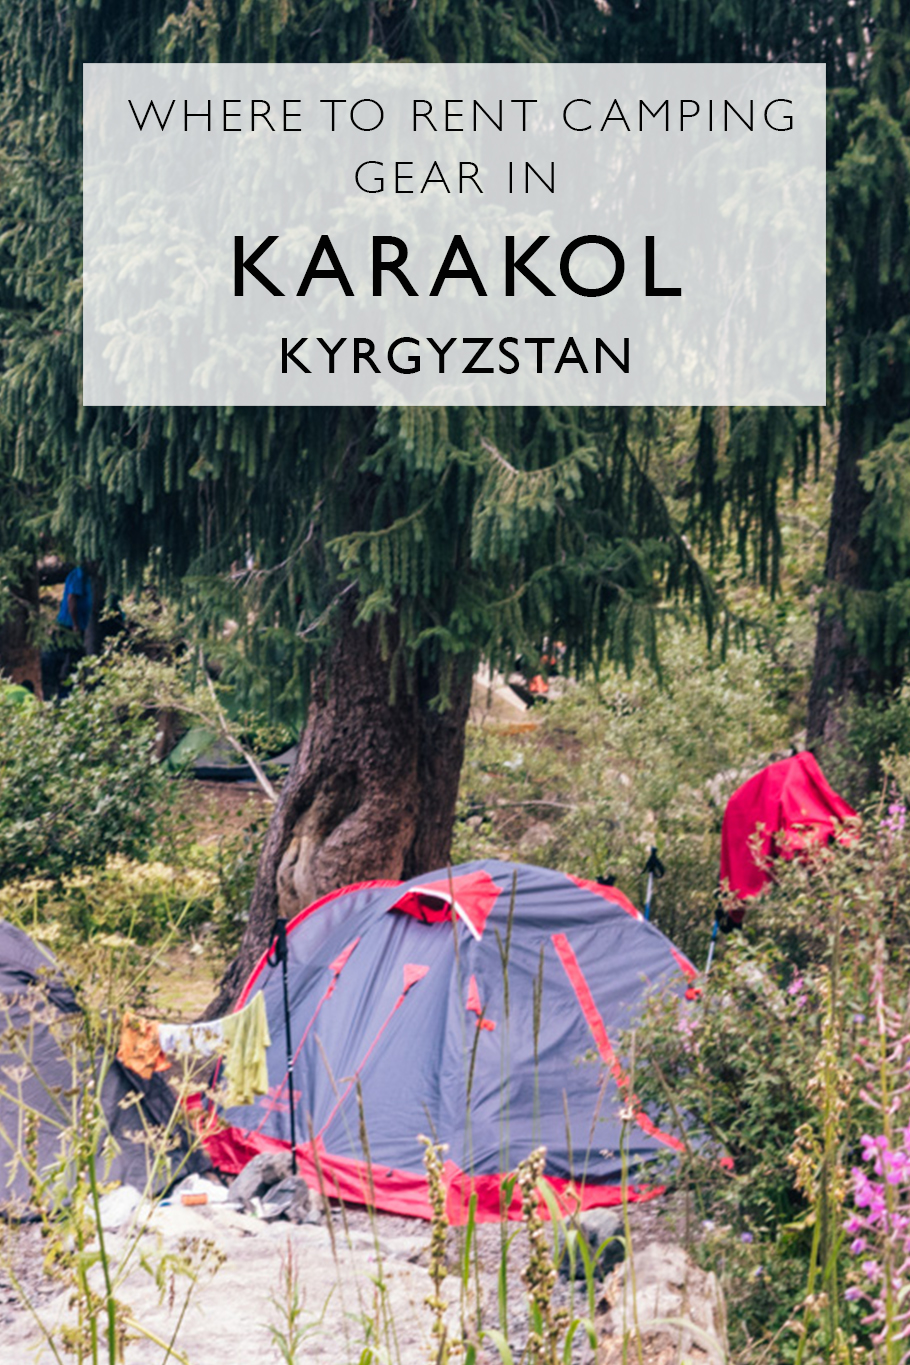 Where To Rent Camping Gear In Karakol | Kyrgyzstan | Hiring Camping Gear In Karakol | Trekking near Karakol | Hiking in Kyrgyzstan